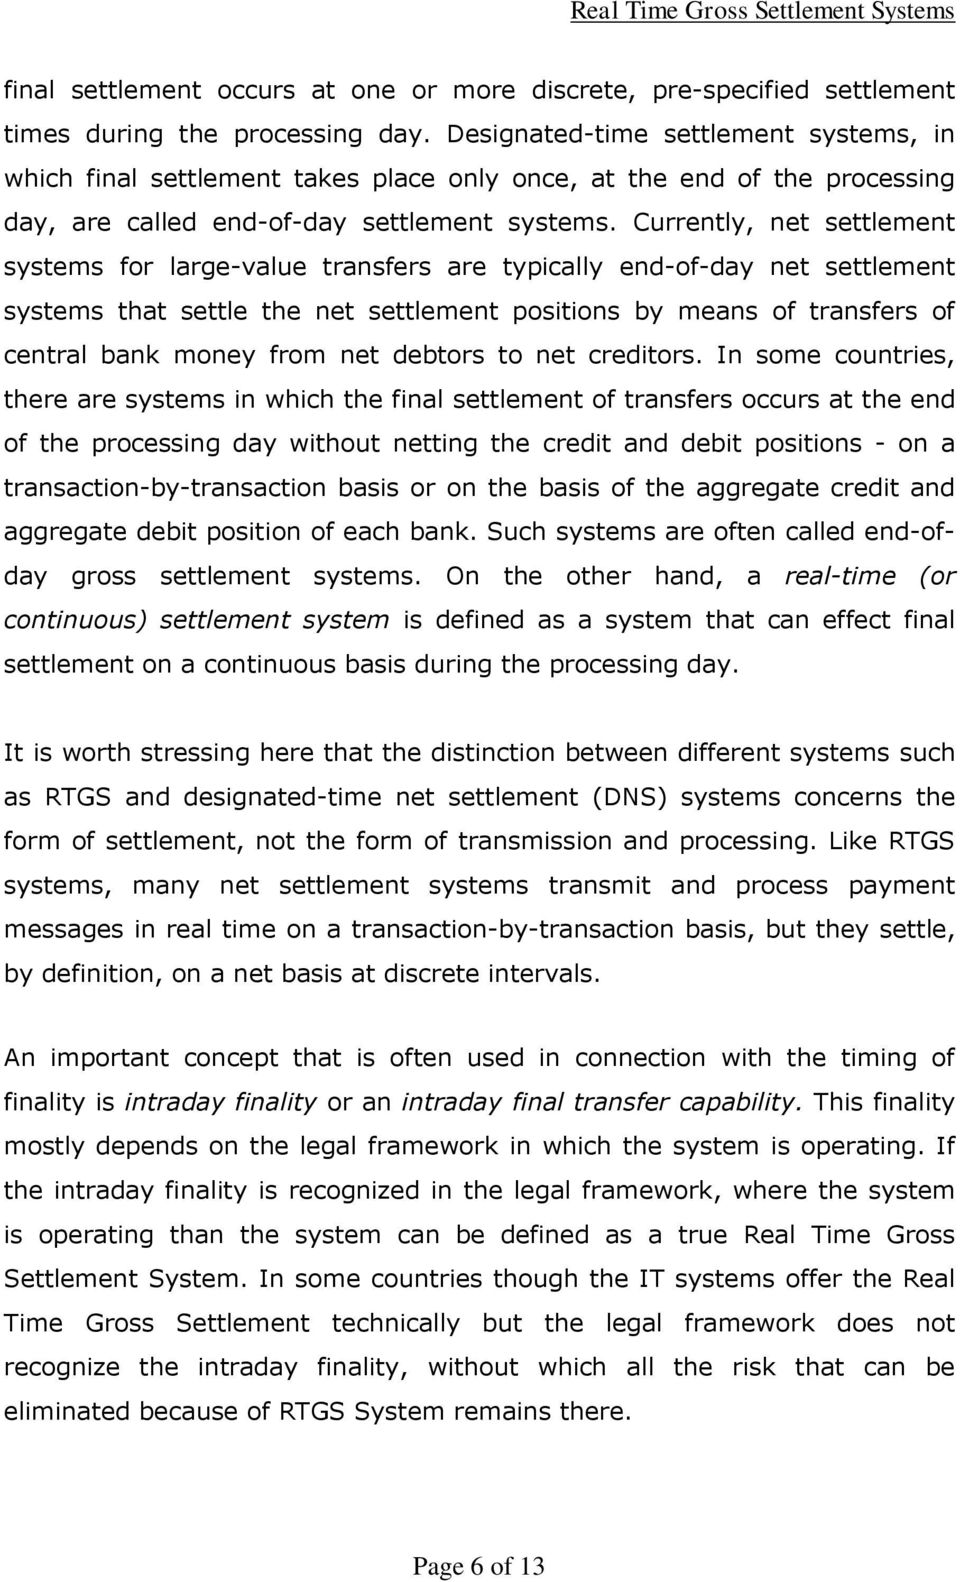 Currently, net settlement systems for large-value transfers are typically end-of-day net settlement systems that settle the net settlement positions by means of transfers of central bank money from